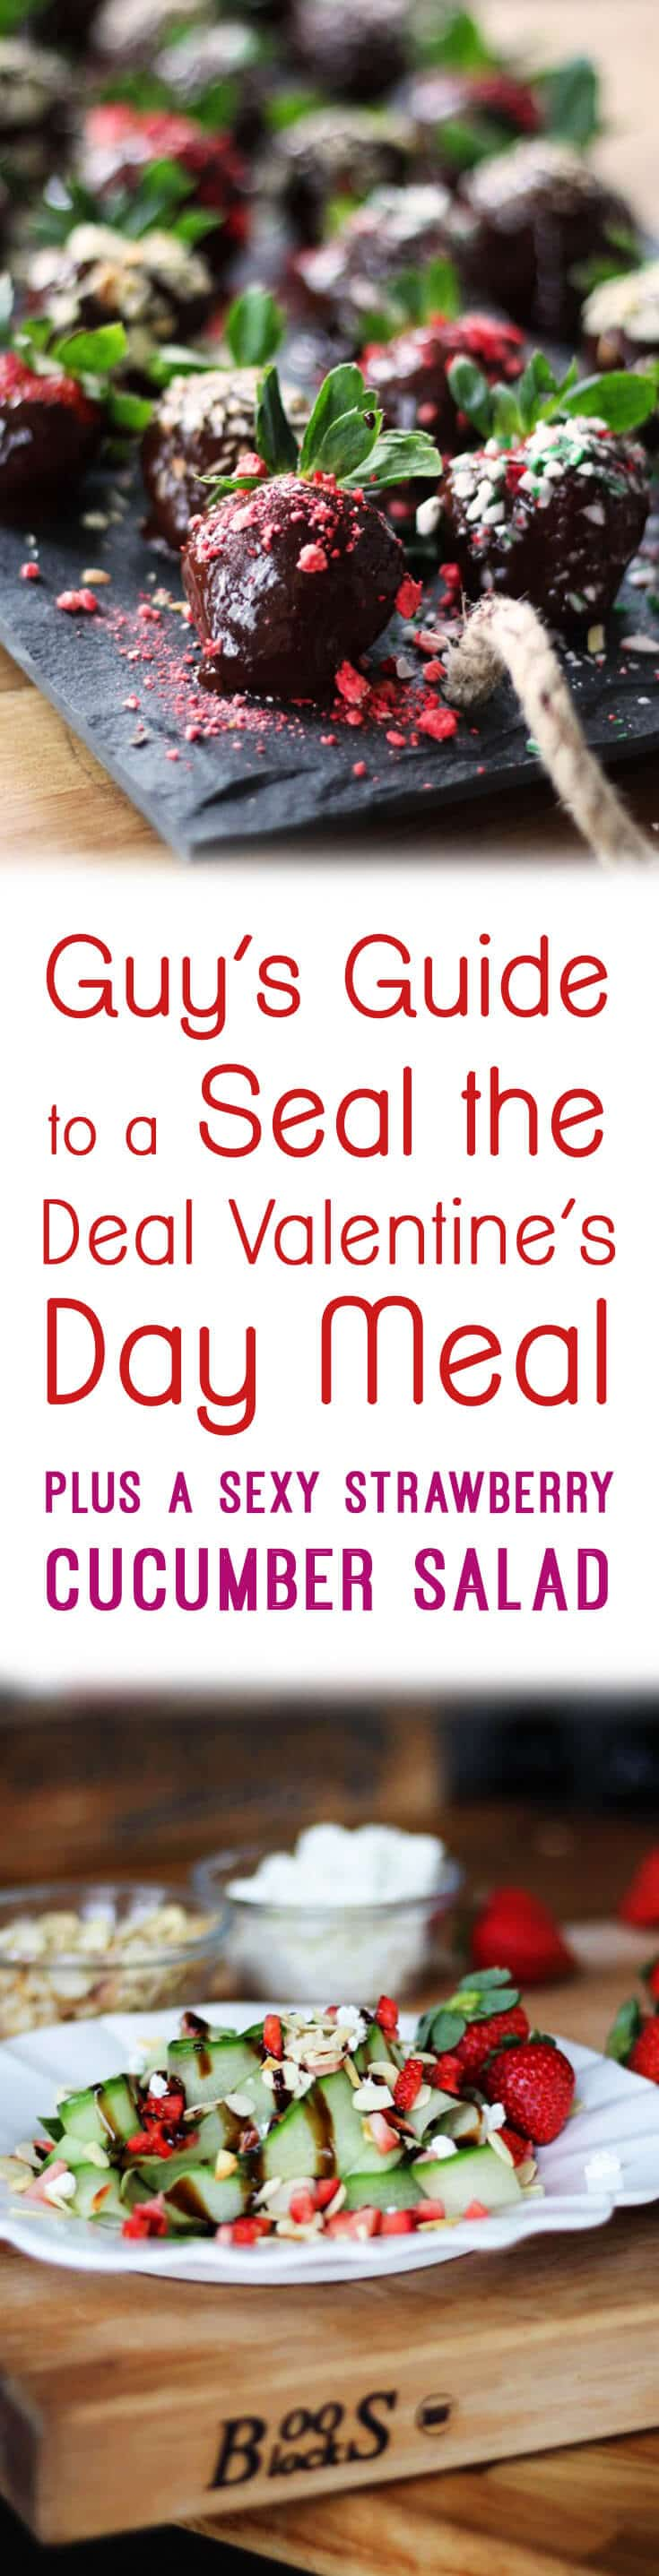 """Pinterest image with chocolate and salad with the overlay text \""""Guy\'s Guide to a Seal the Deal Valentine\'s Day Meal Plus a Sexy Strawberry Cucumber Salad.\"""""""